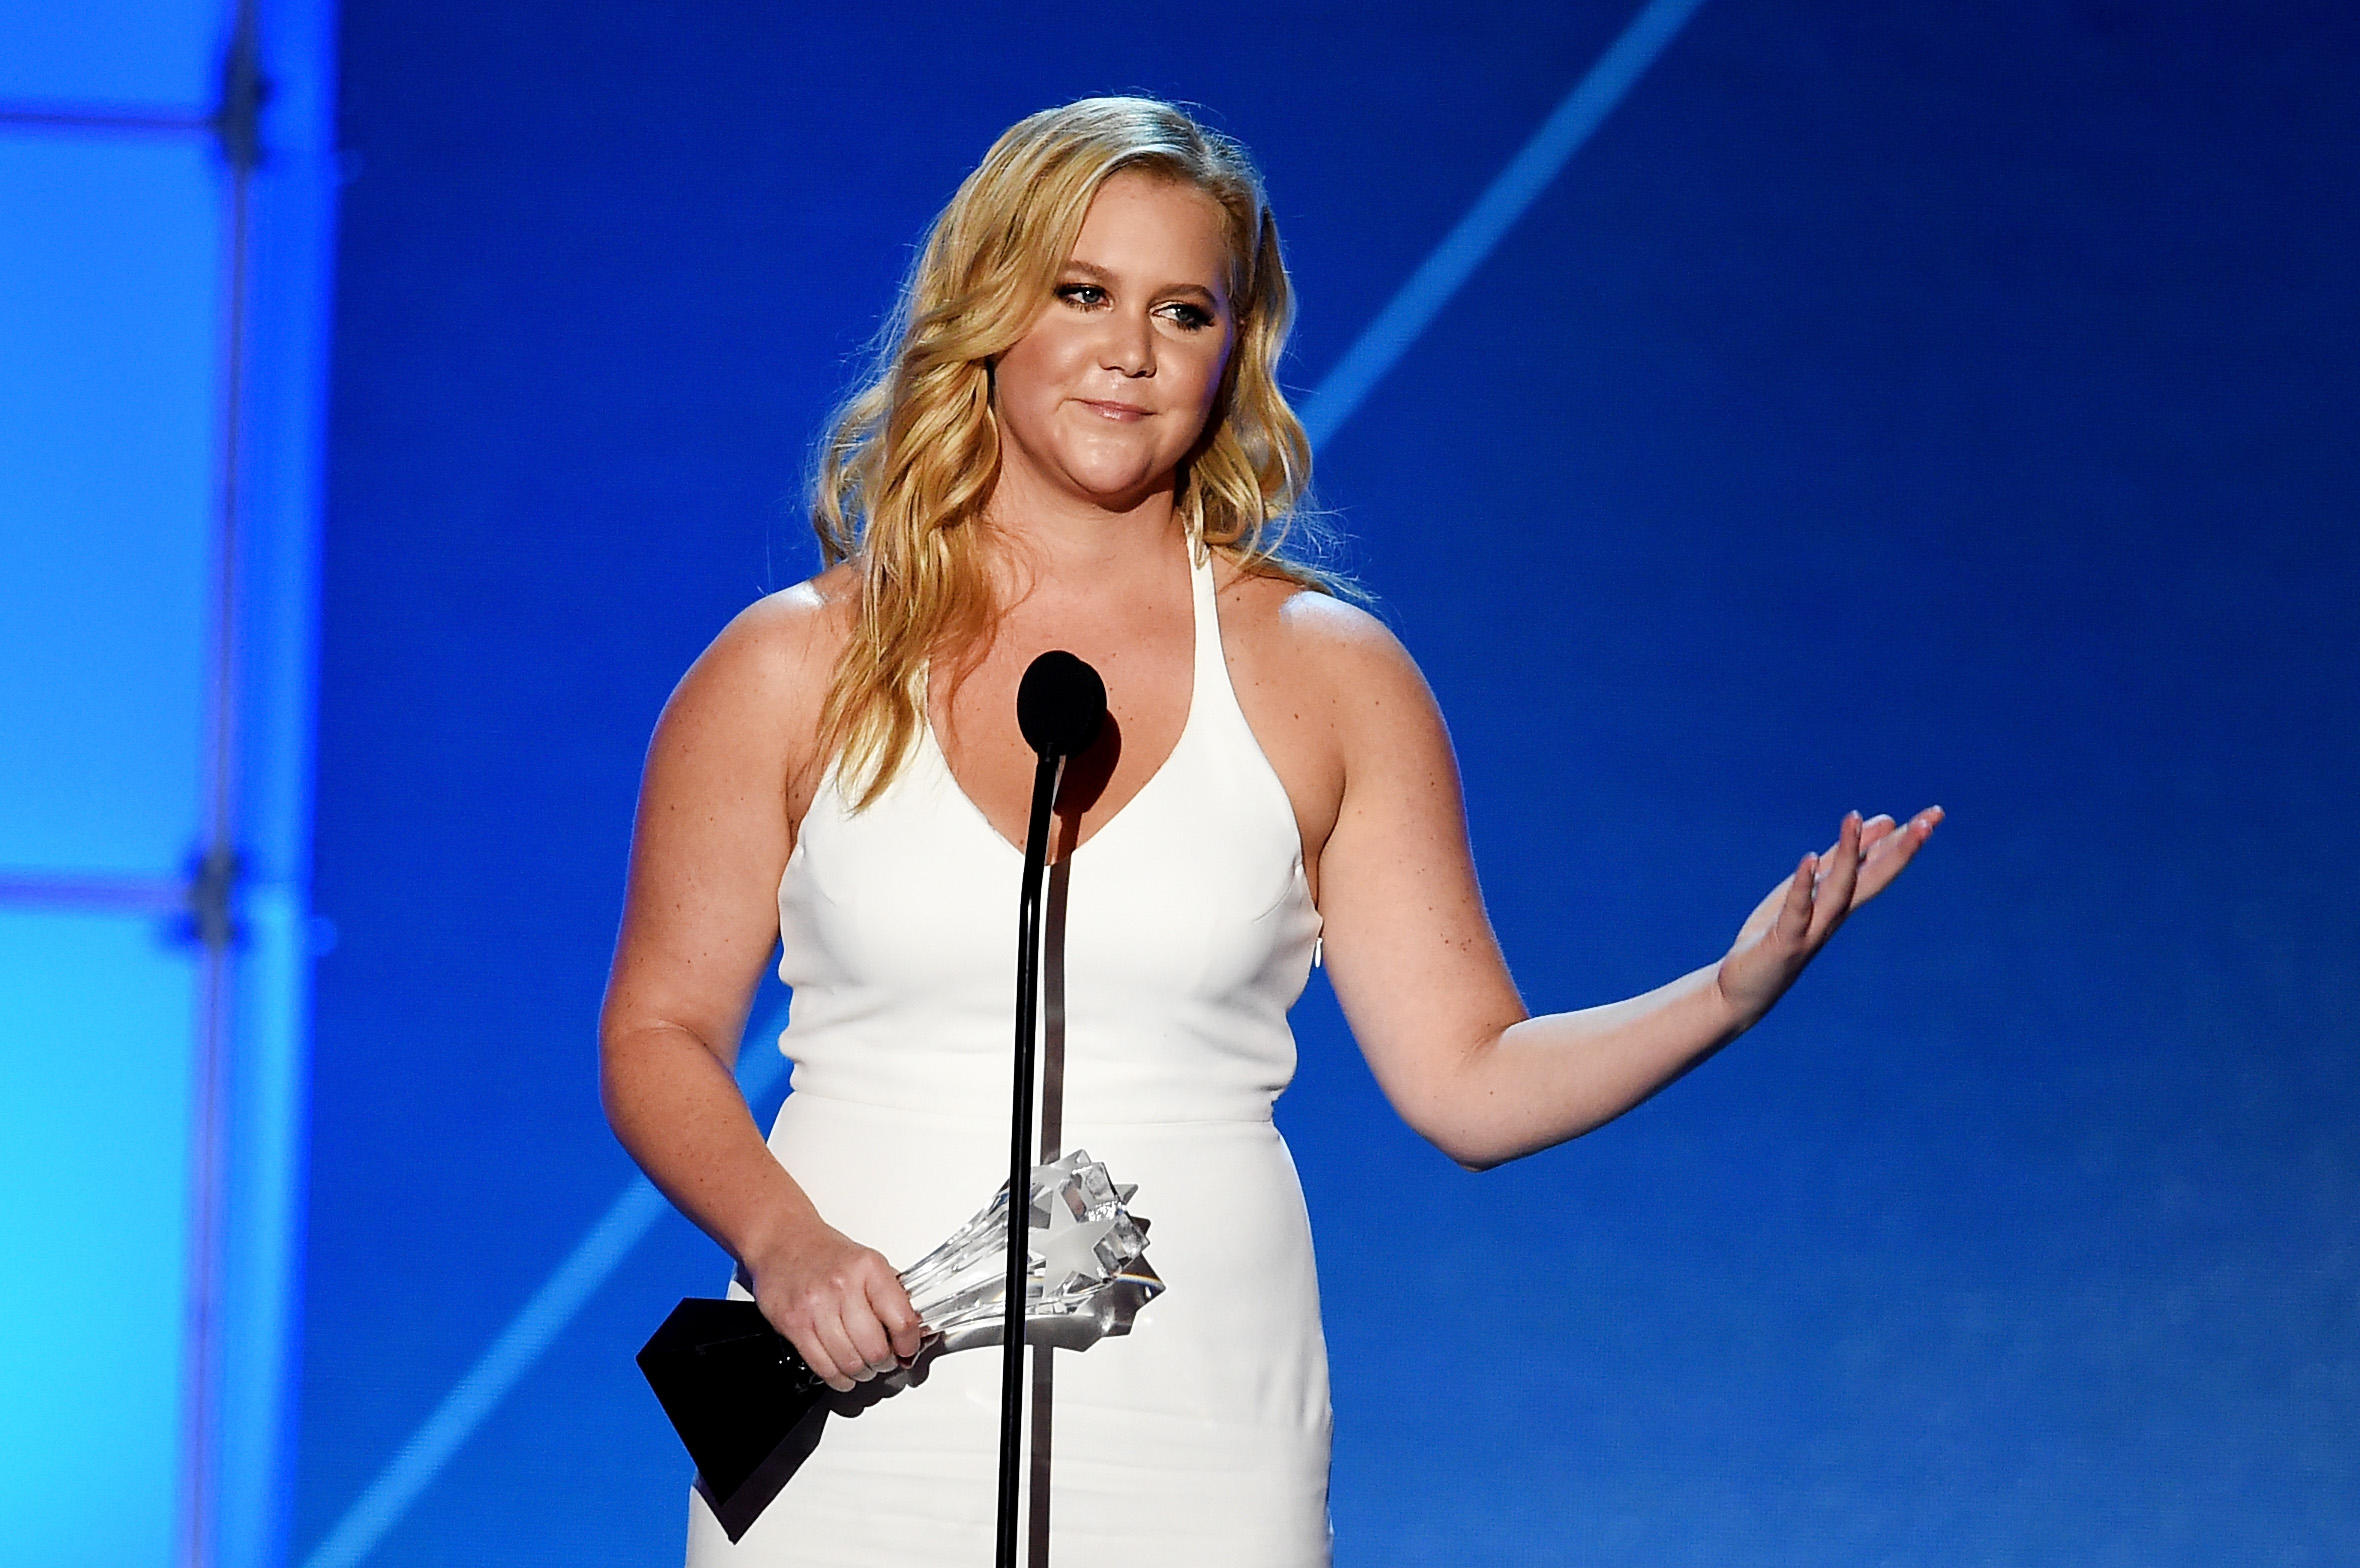 Amy Schumer speaks onstage during the 21st Annual Critics' Choice Awards at Barker Hangar on January 17, 2016 in Santa Monica, California.